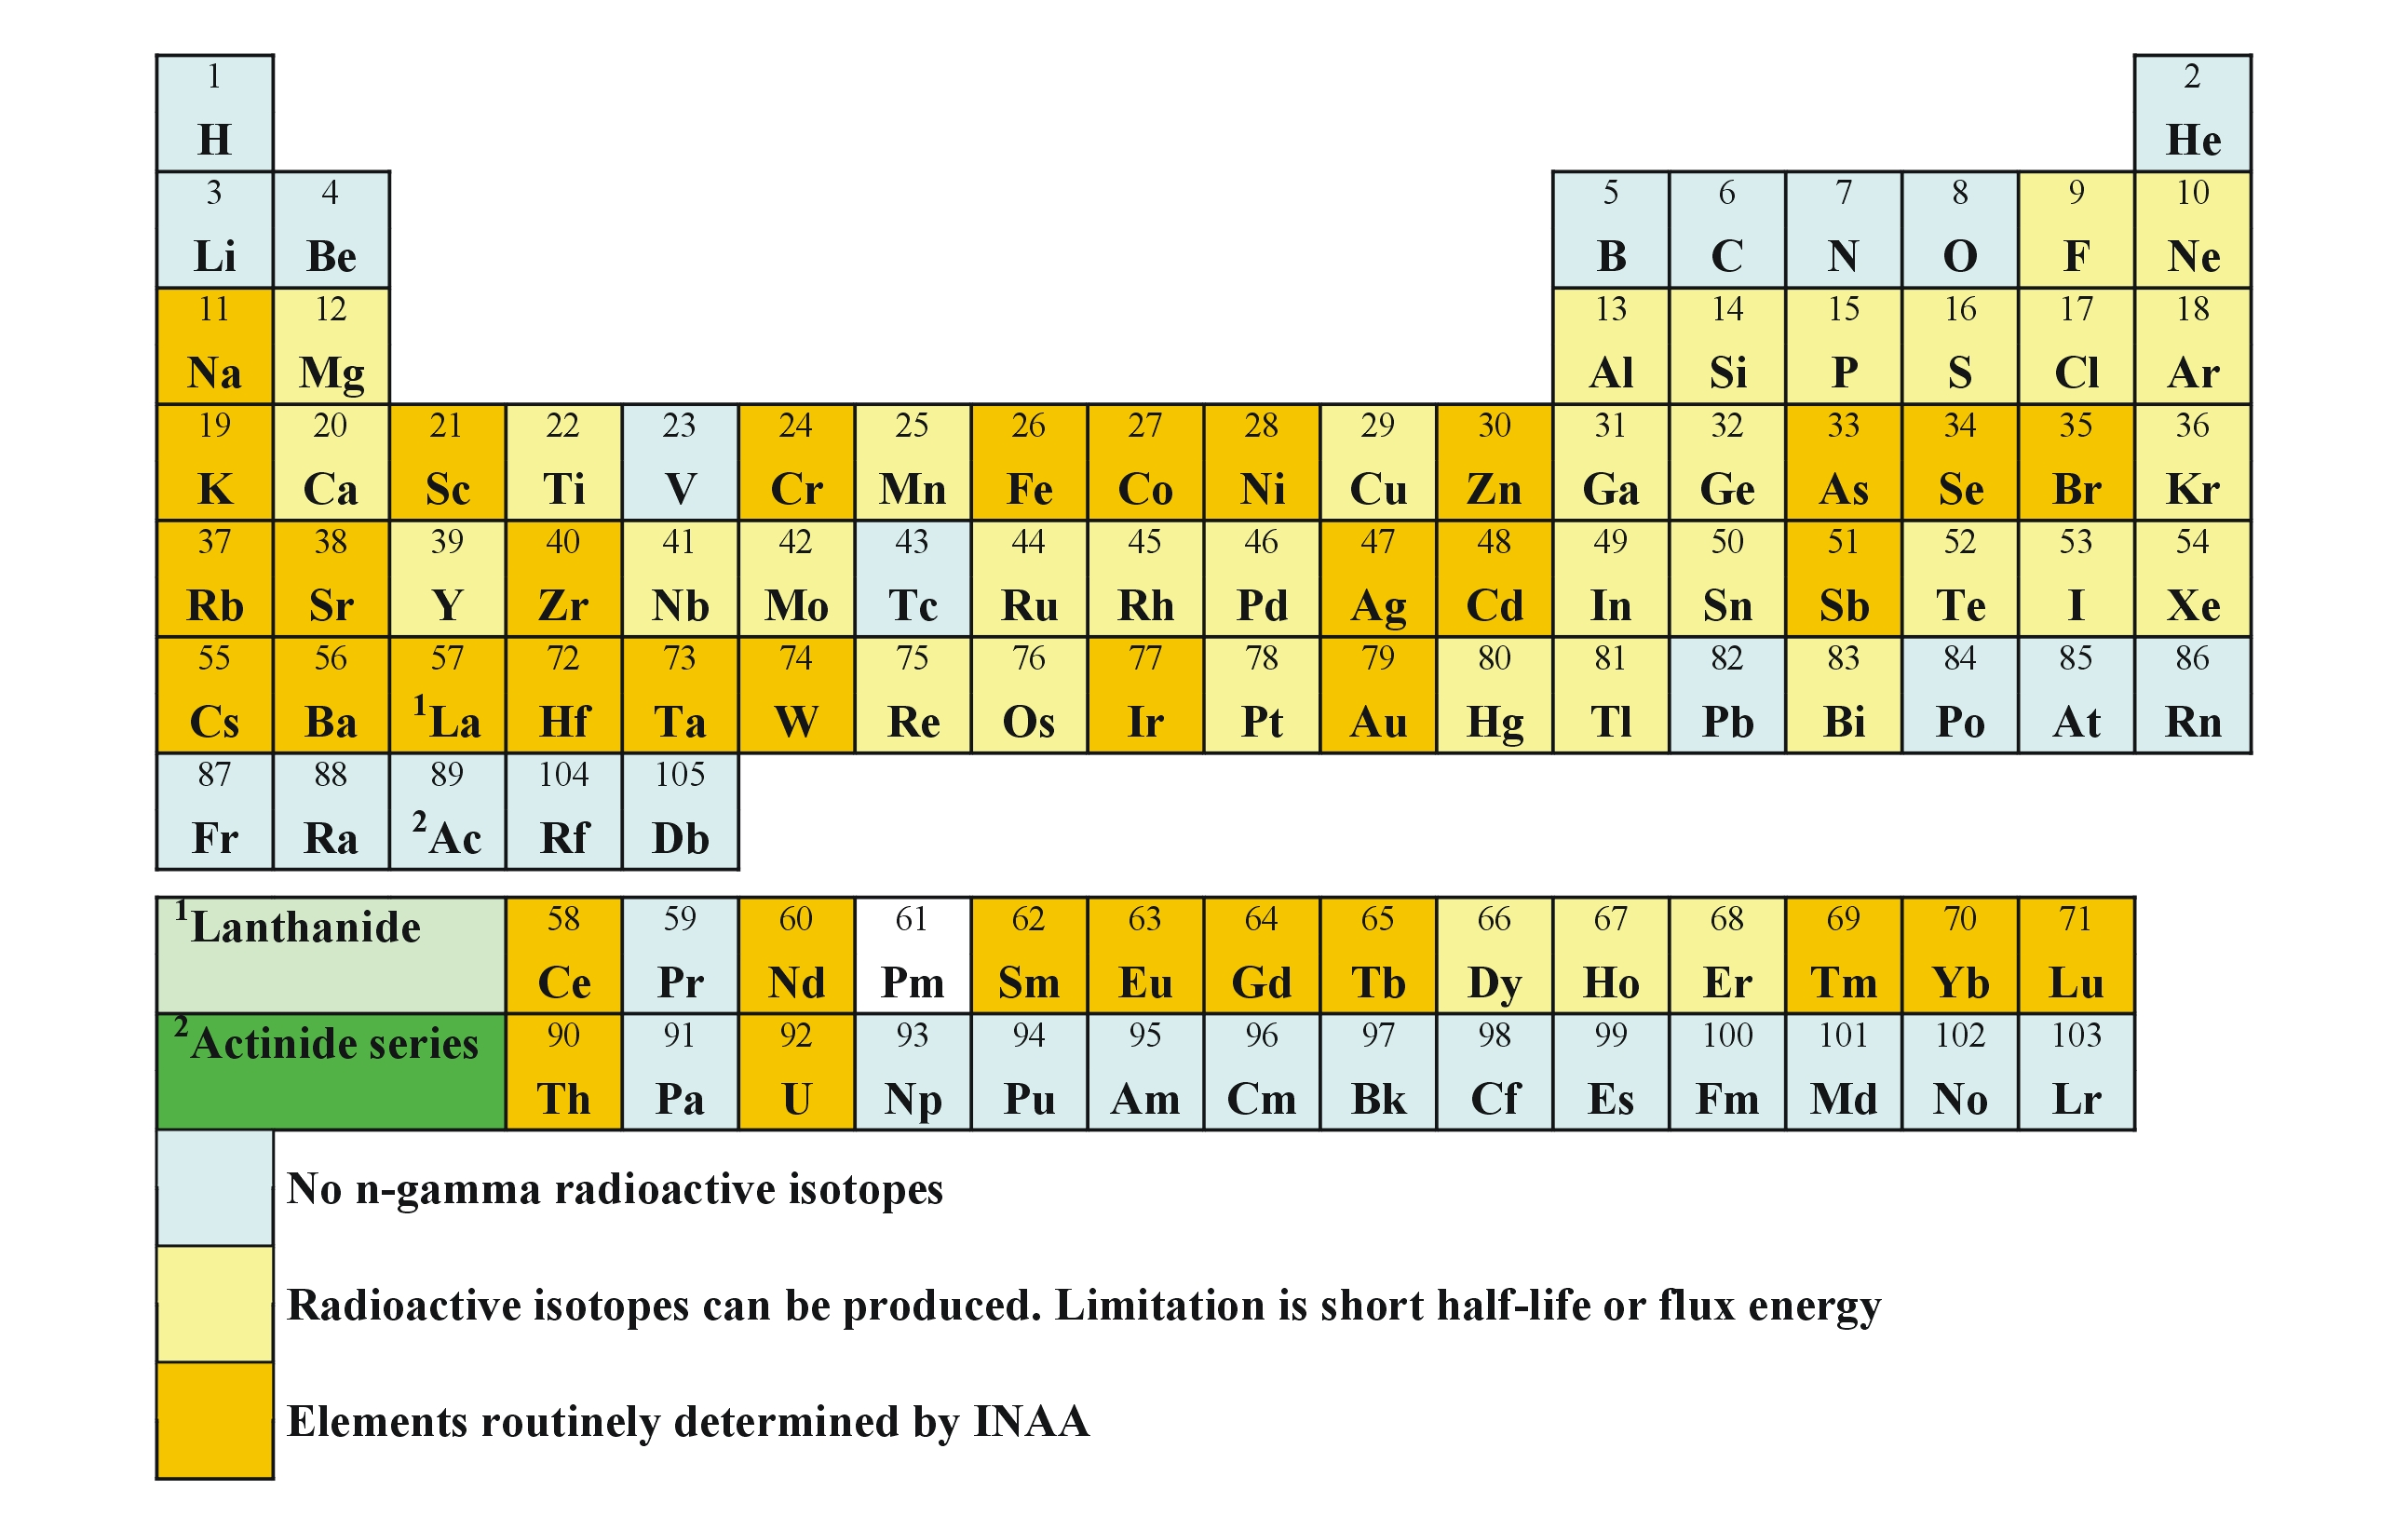 Periodictableinaag periodic table inaa view original image at full size urtaz Choice Image